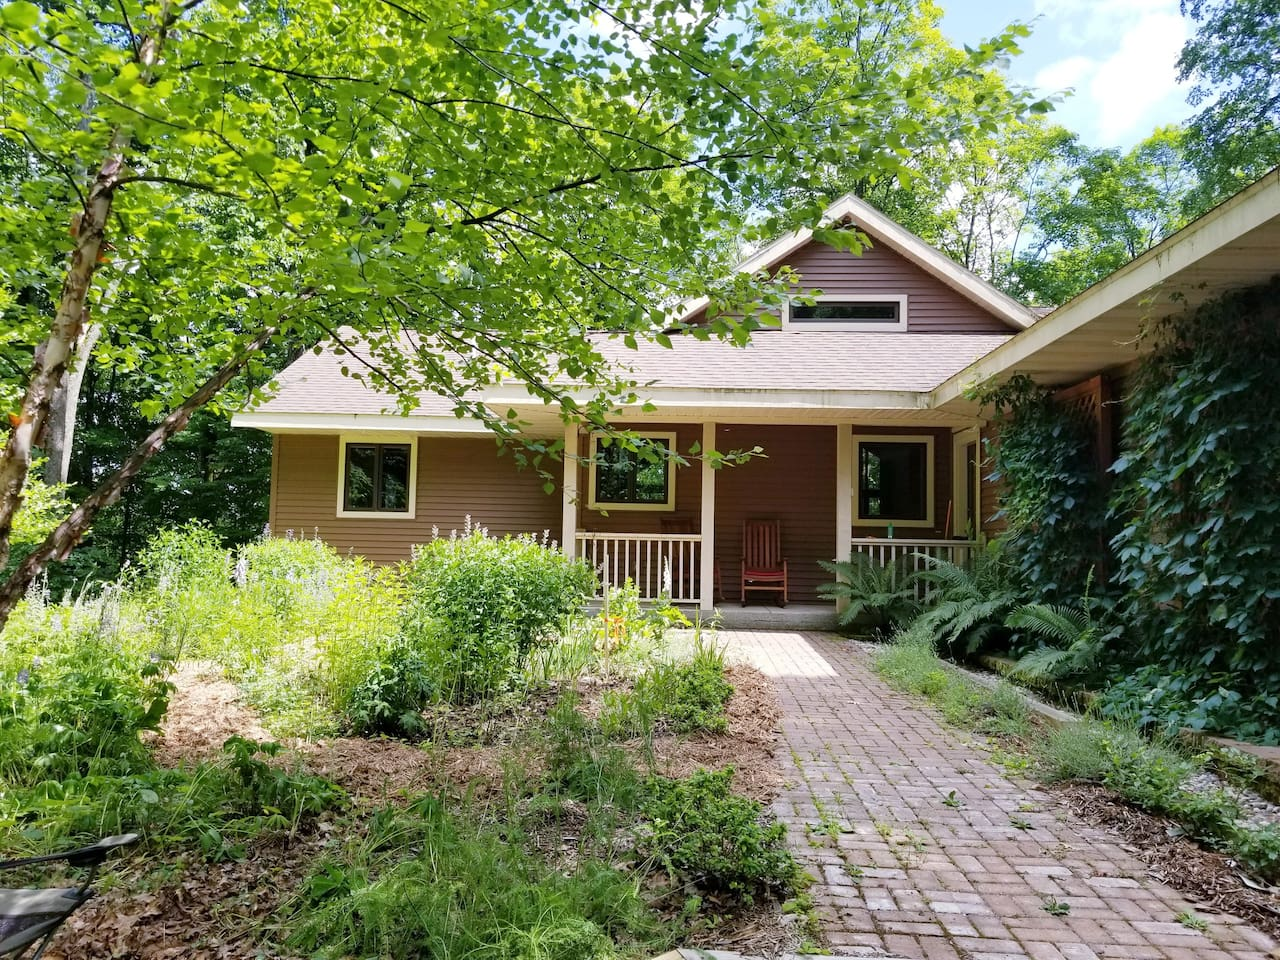 Lovely upscale cabin with all the amenities nestled in a stunning backwoods setting in northern Wisconsin.